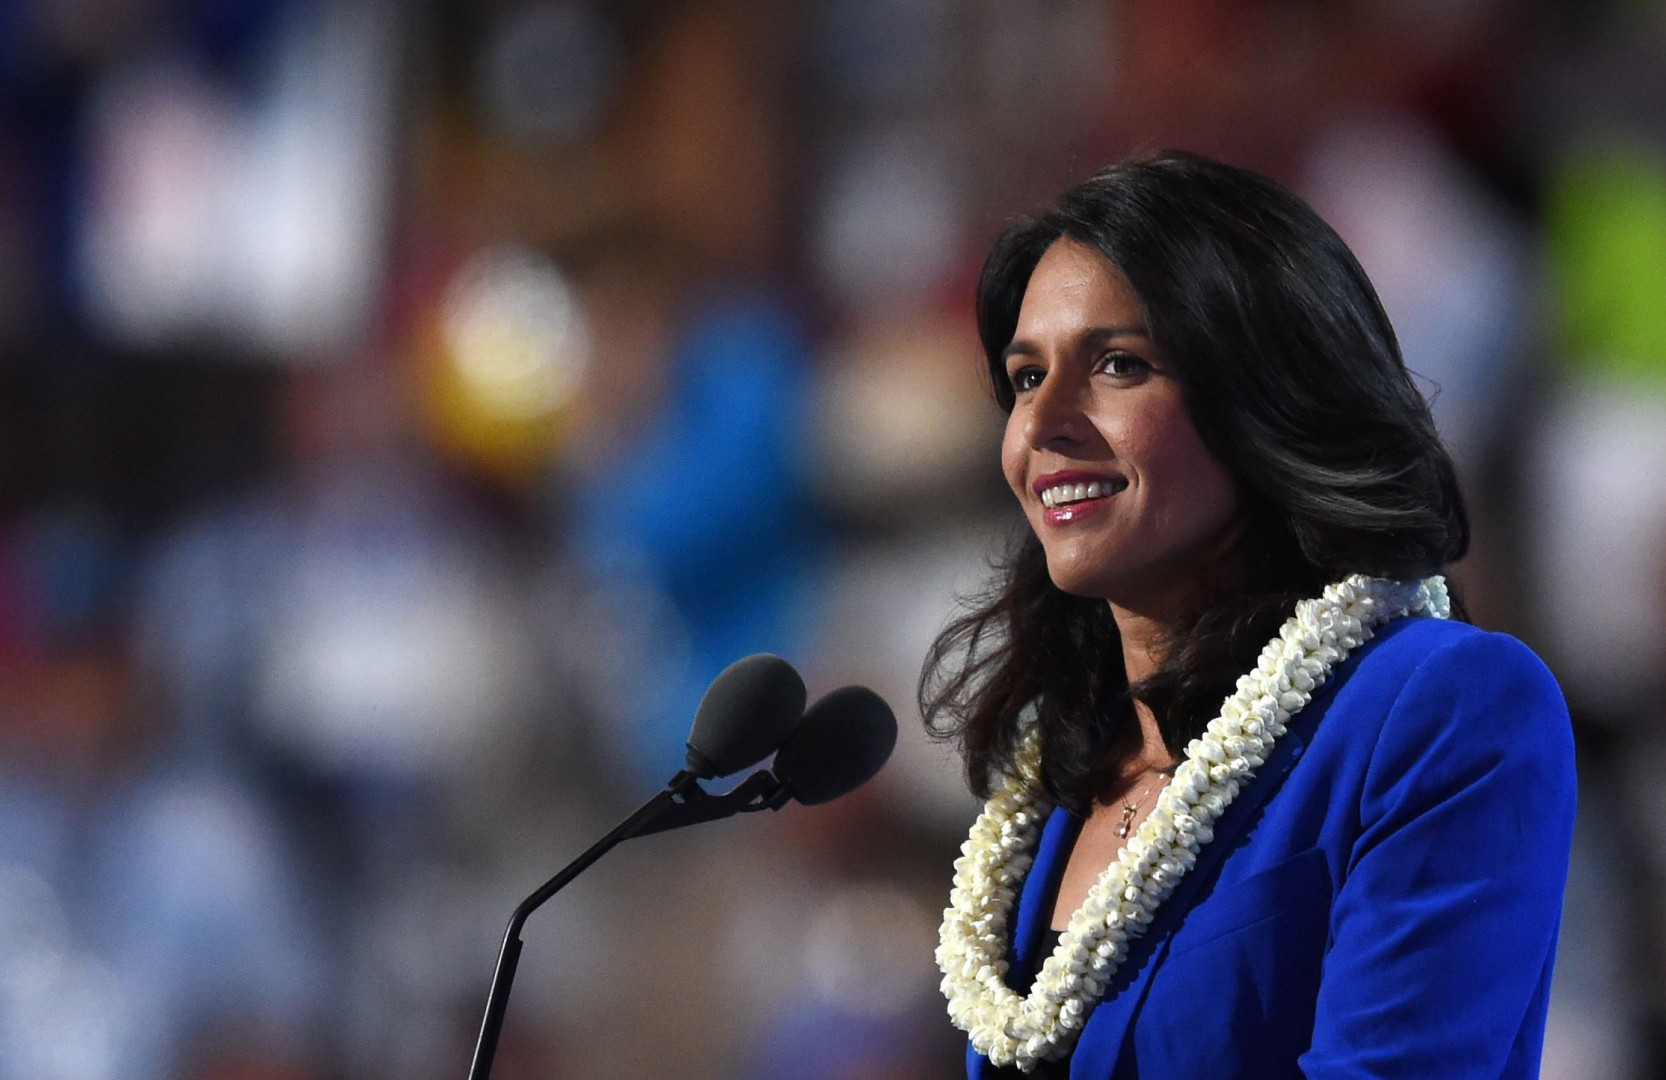 (FILES) In this file photo US Representative Tulsi Gabbard speaks during Day 2 of the Democratic National Convention at the Wells Fargo Center in Philadelphia, Pennsylvania, July 26, 2016. - Rep. Tulsi Gabbard US Representative for Hawaii's 2nd congressional district since 2013, said Friday January 11, 2019 she will run for president in 2020. (Photo by Timothy A. CLARY / AFP)